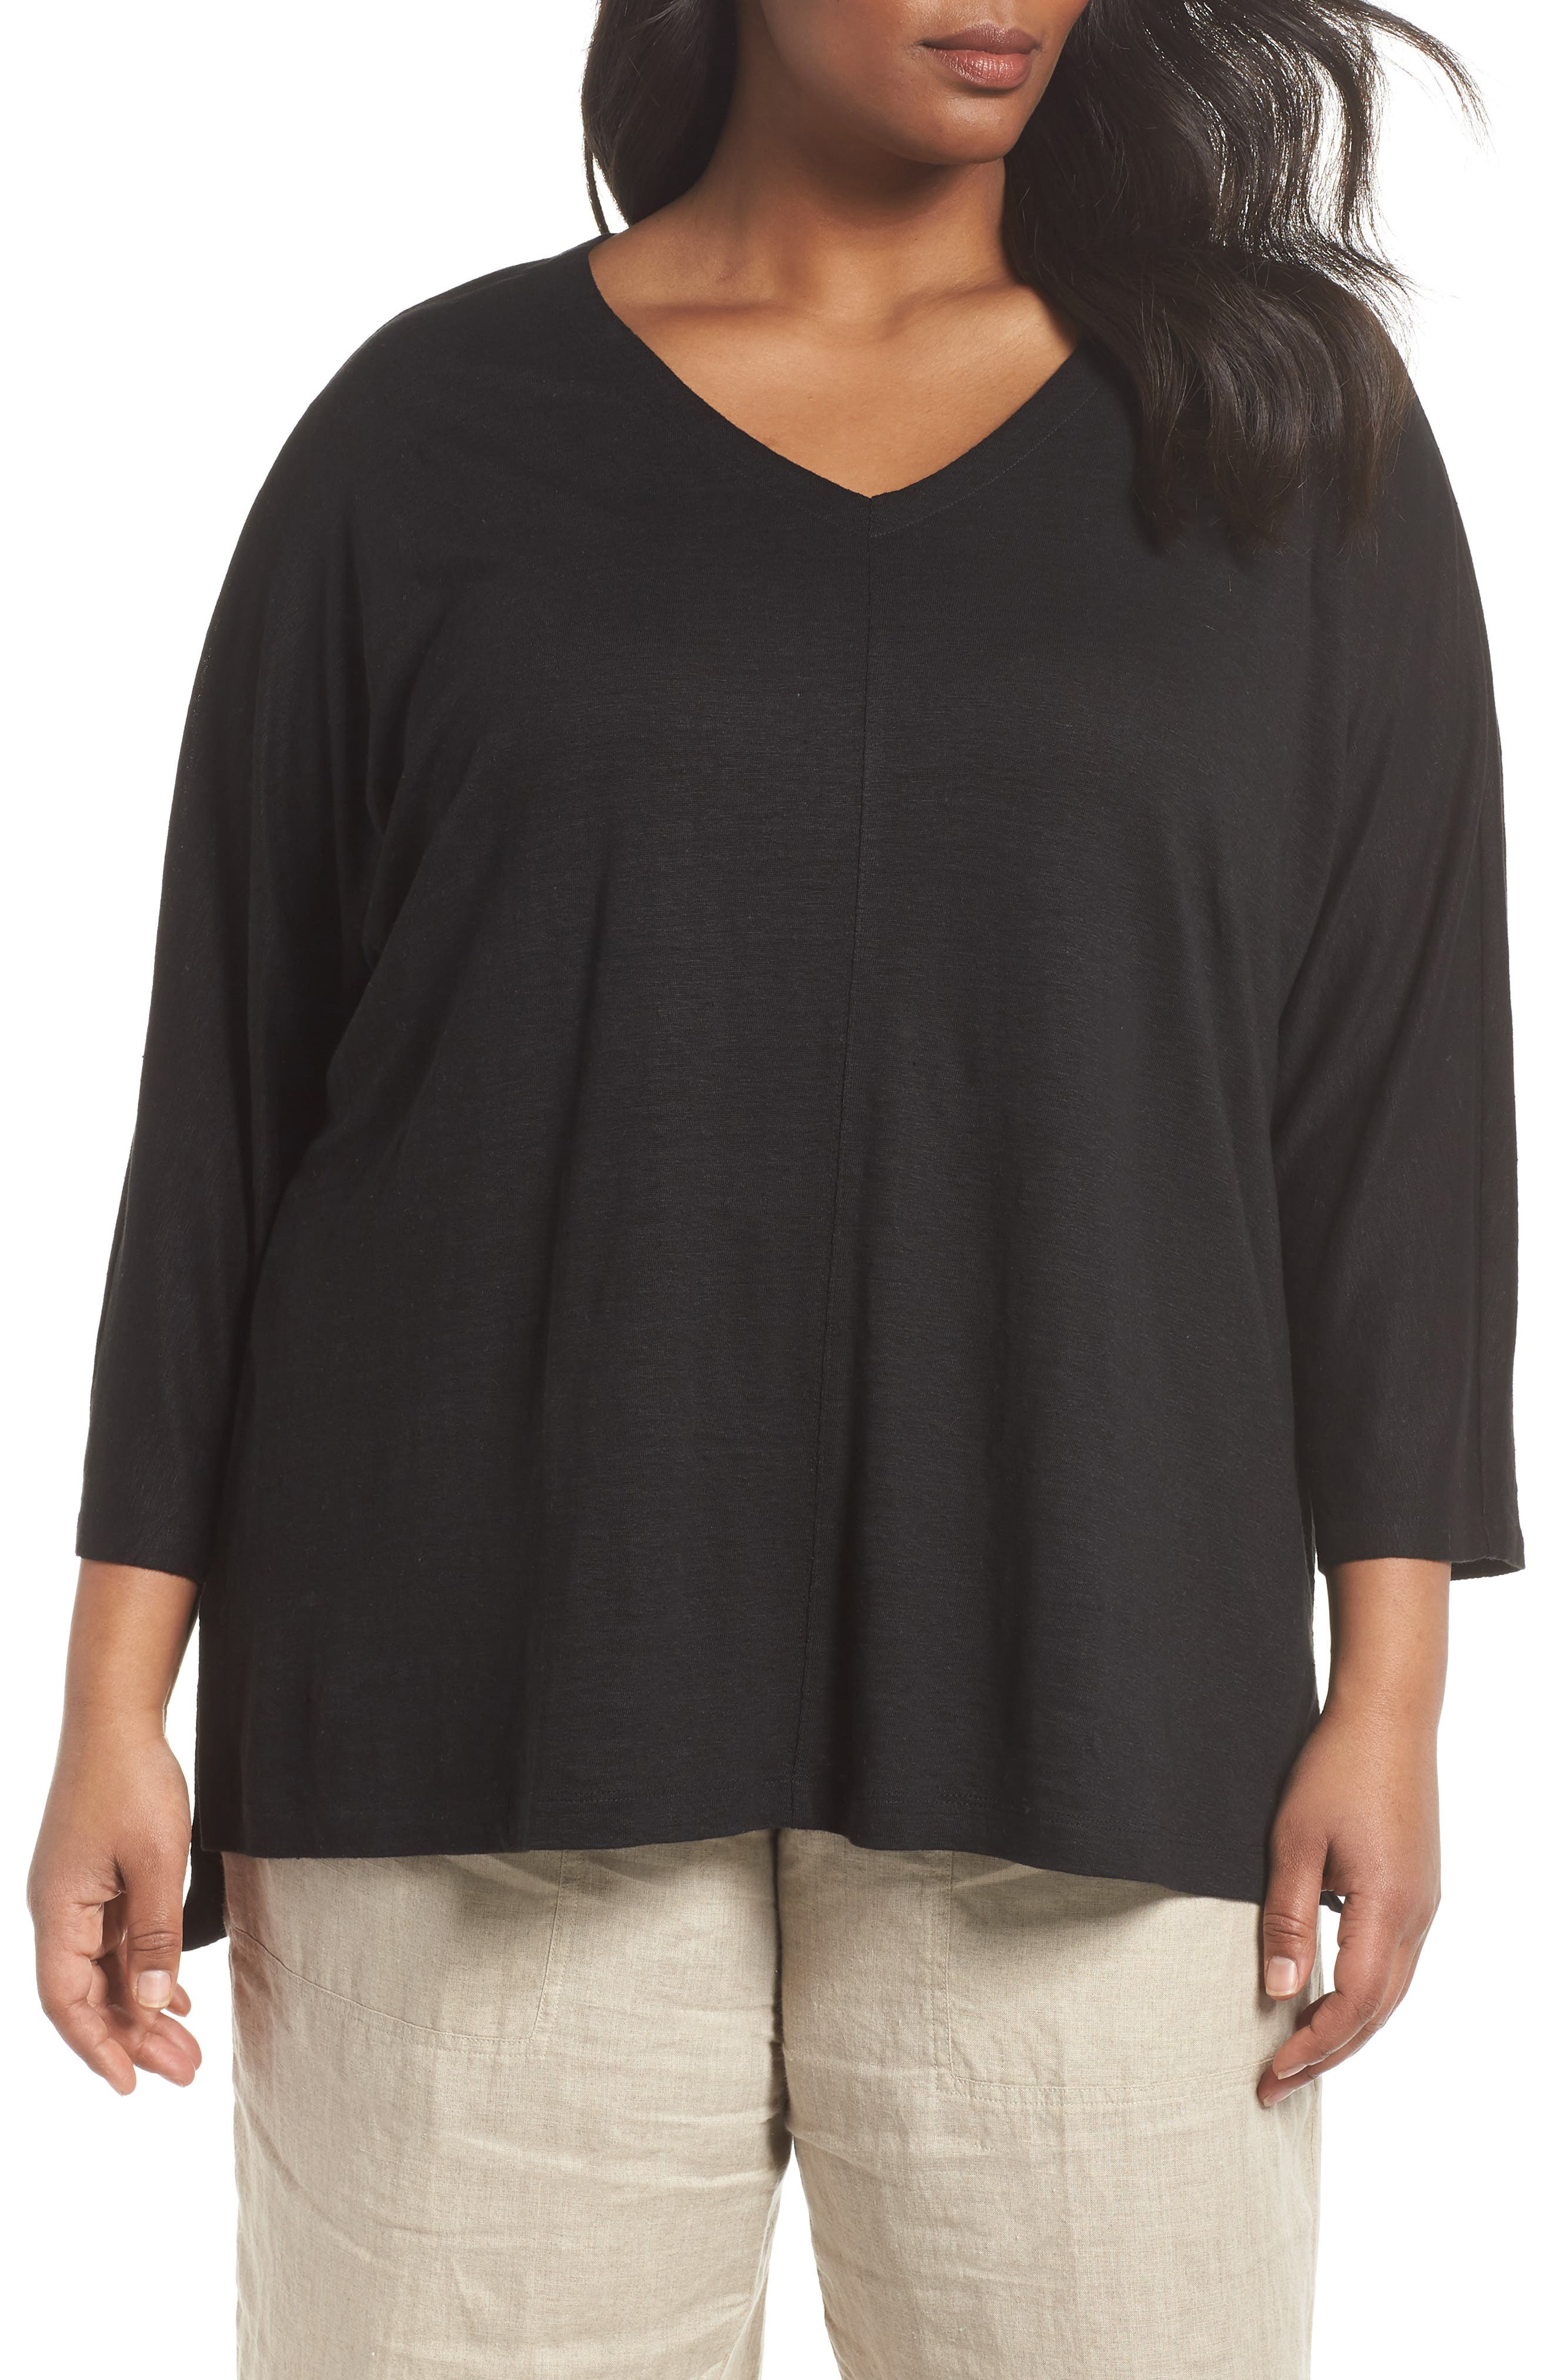 EILEEN FISHER,                             Organic Linen Top,                             Main thumbnail 1, color,                             001